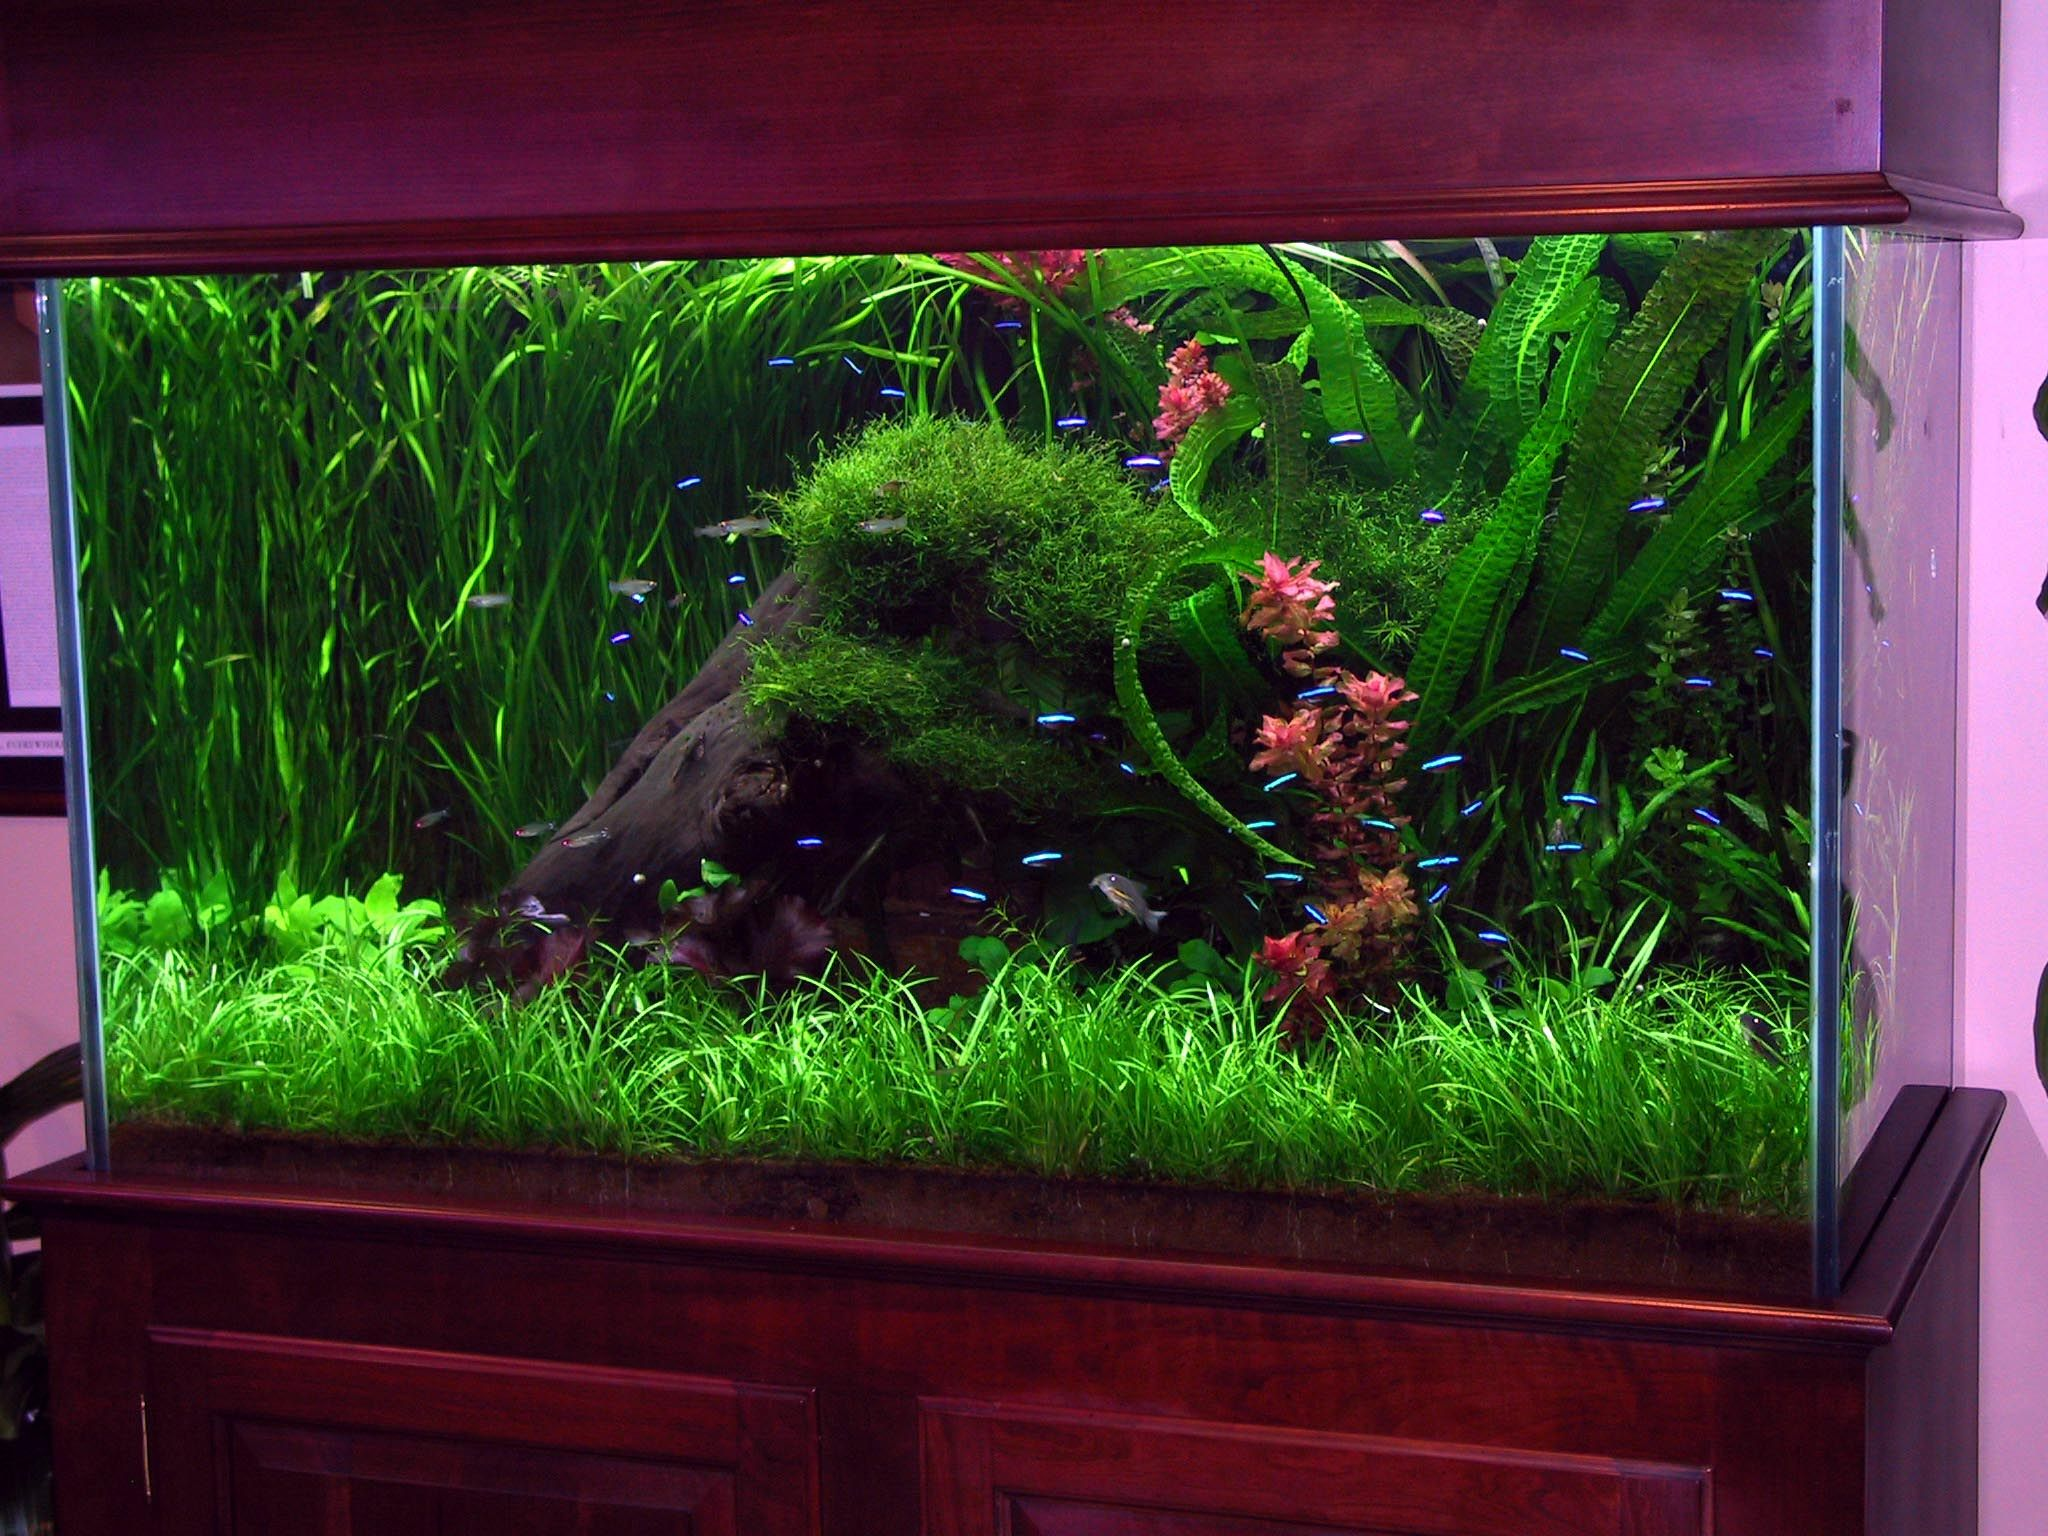 Transform the Way Your Home Looks Using a Fish Tank | Aquariums ...